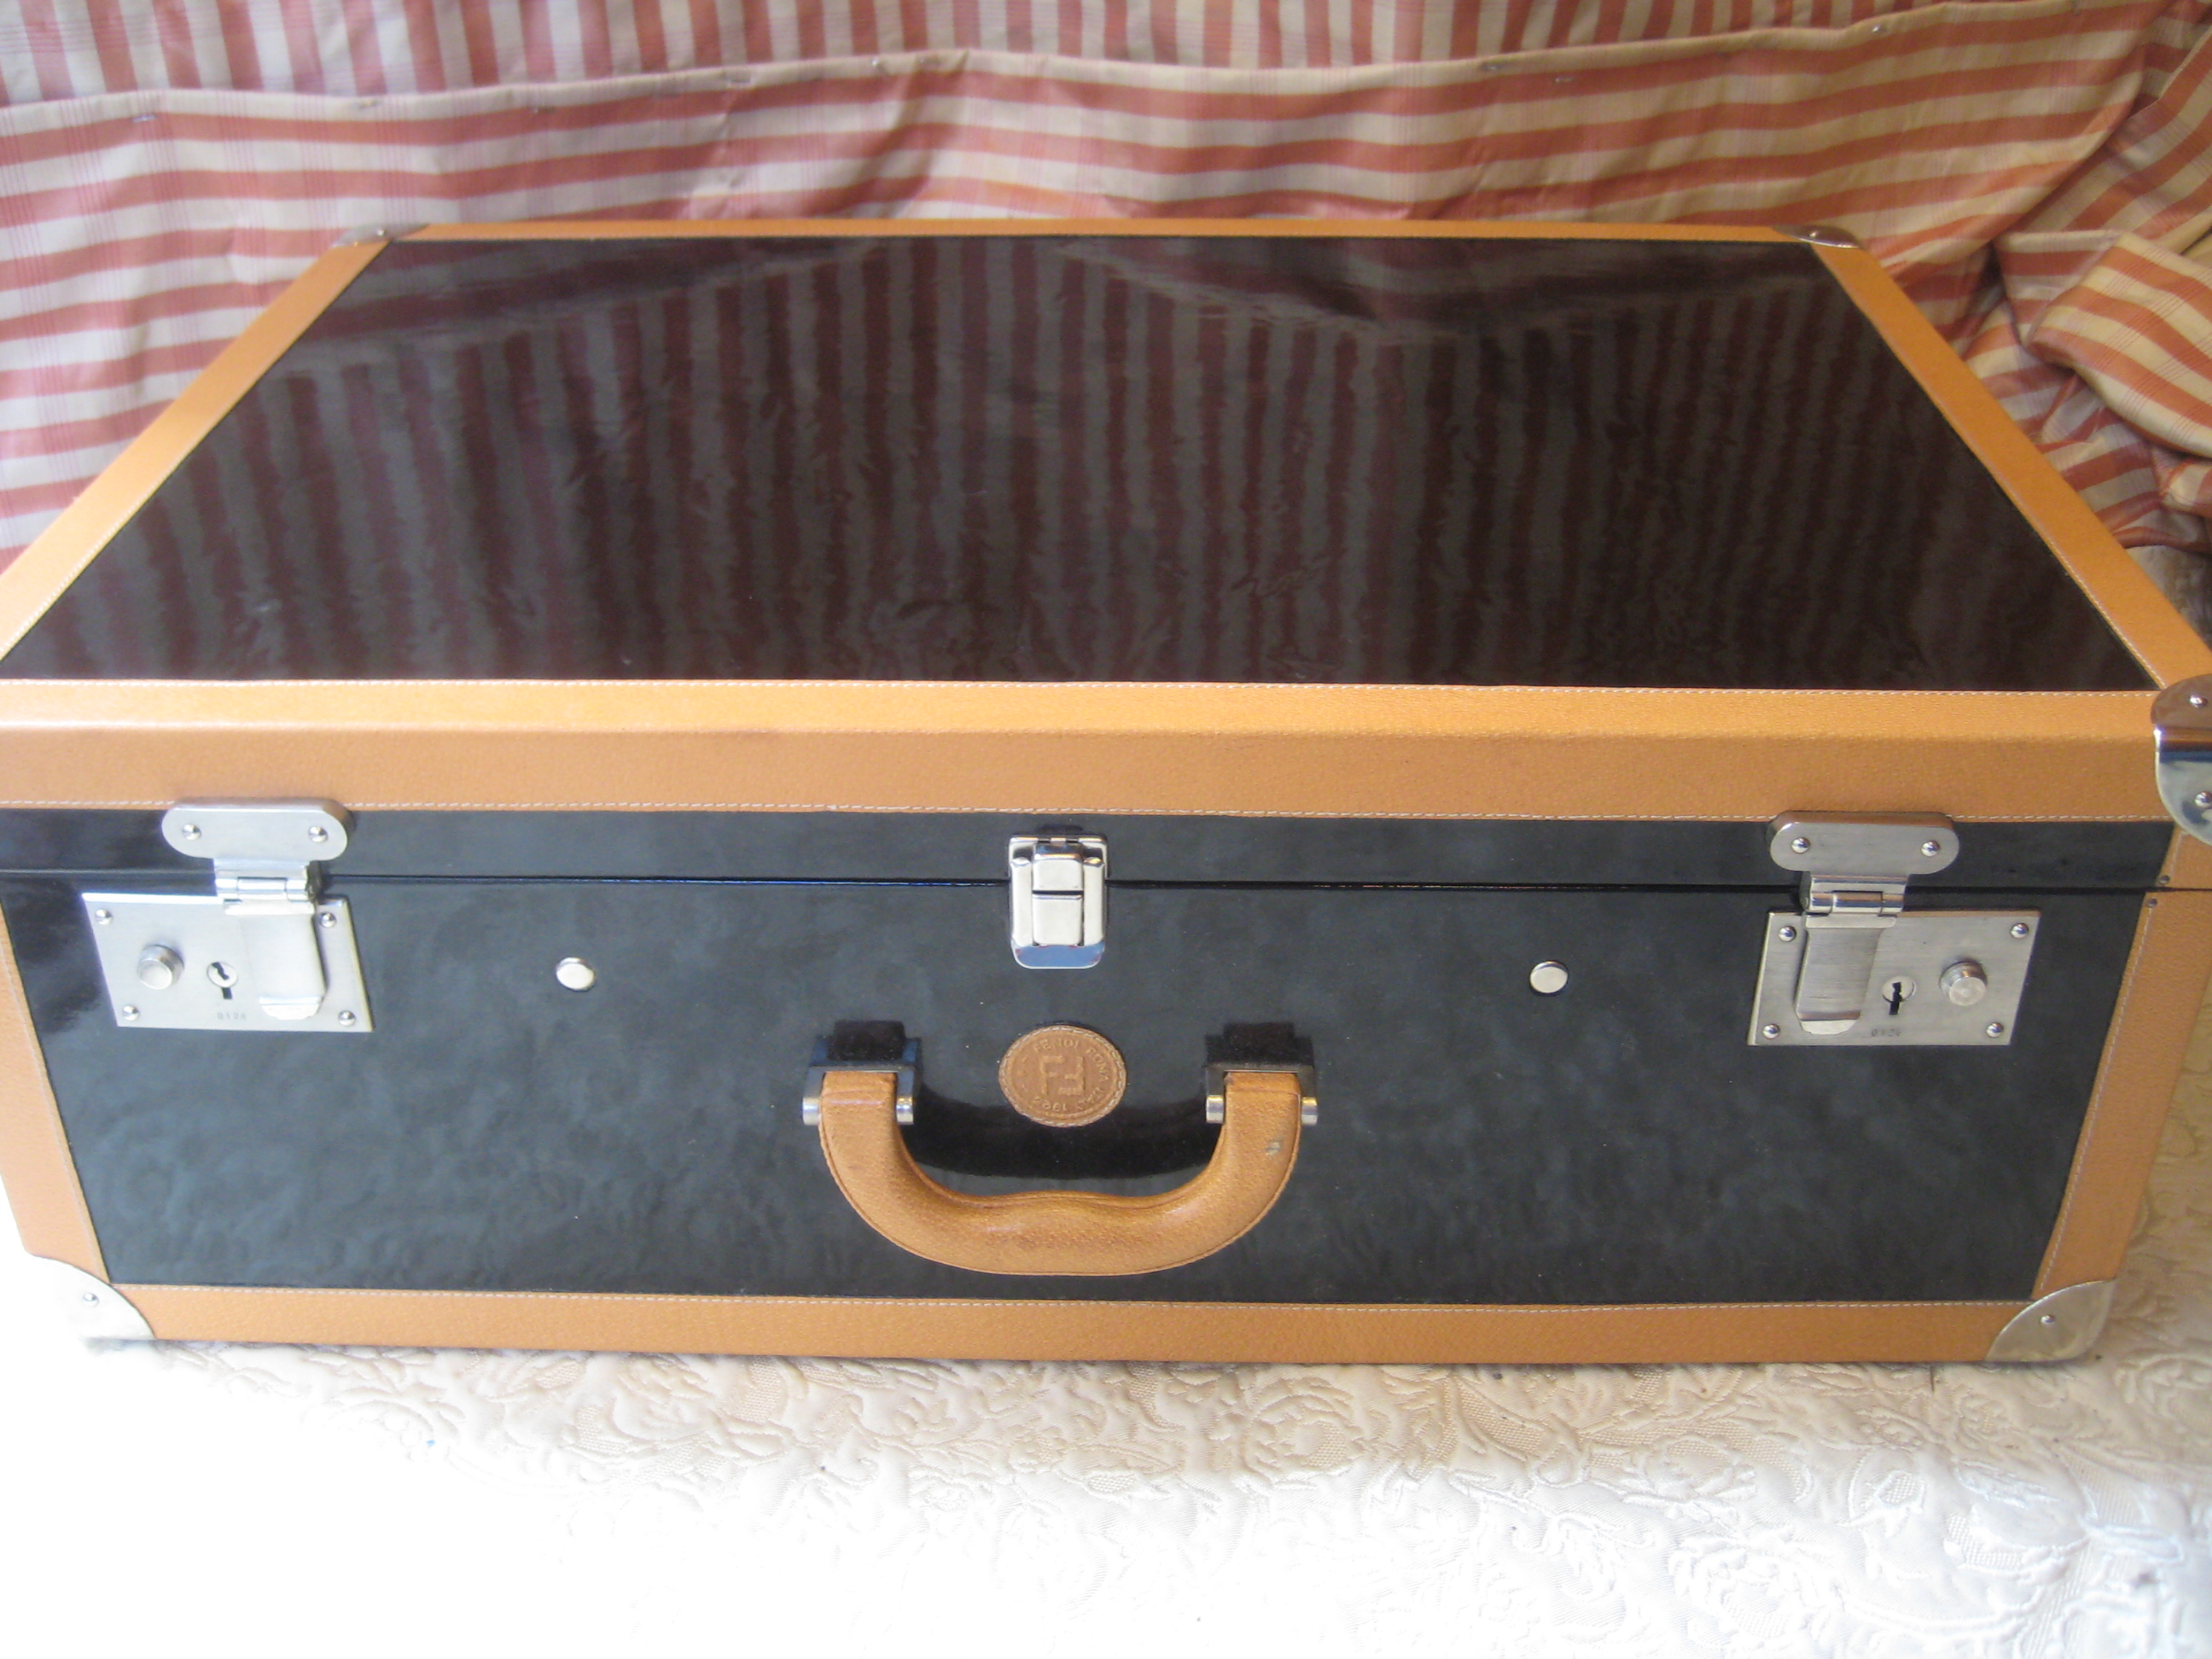 Faux fendi suitcase flickr photo sharing for Housing works thrift shop auctions